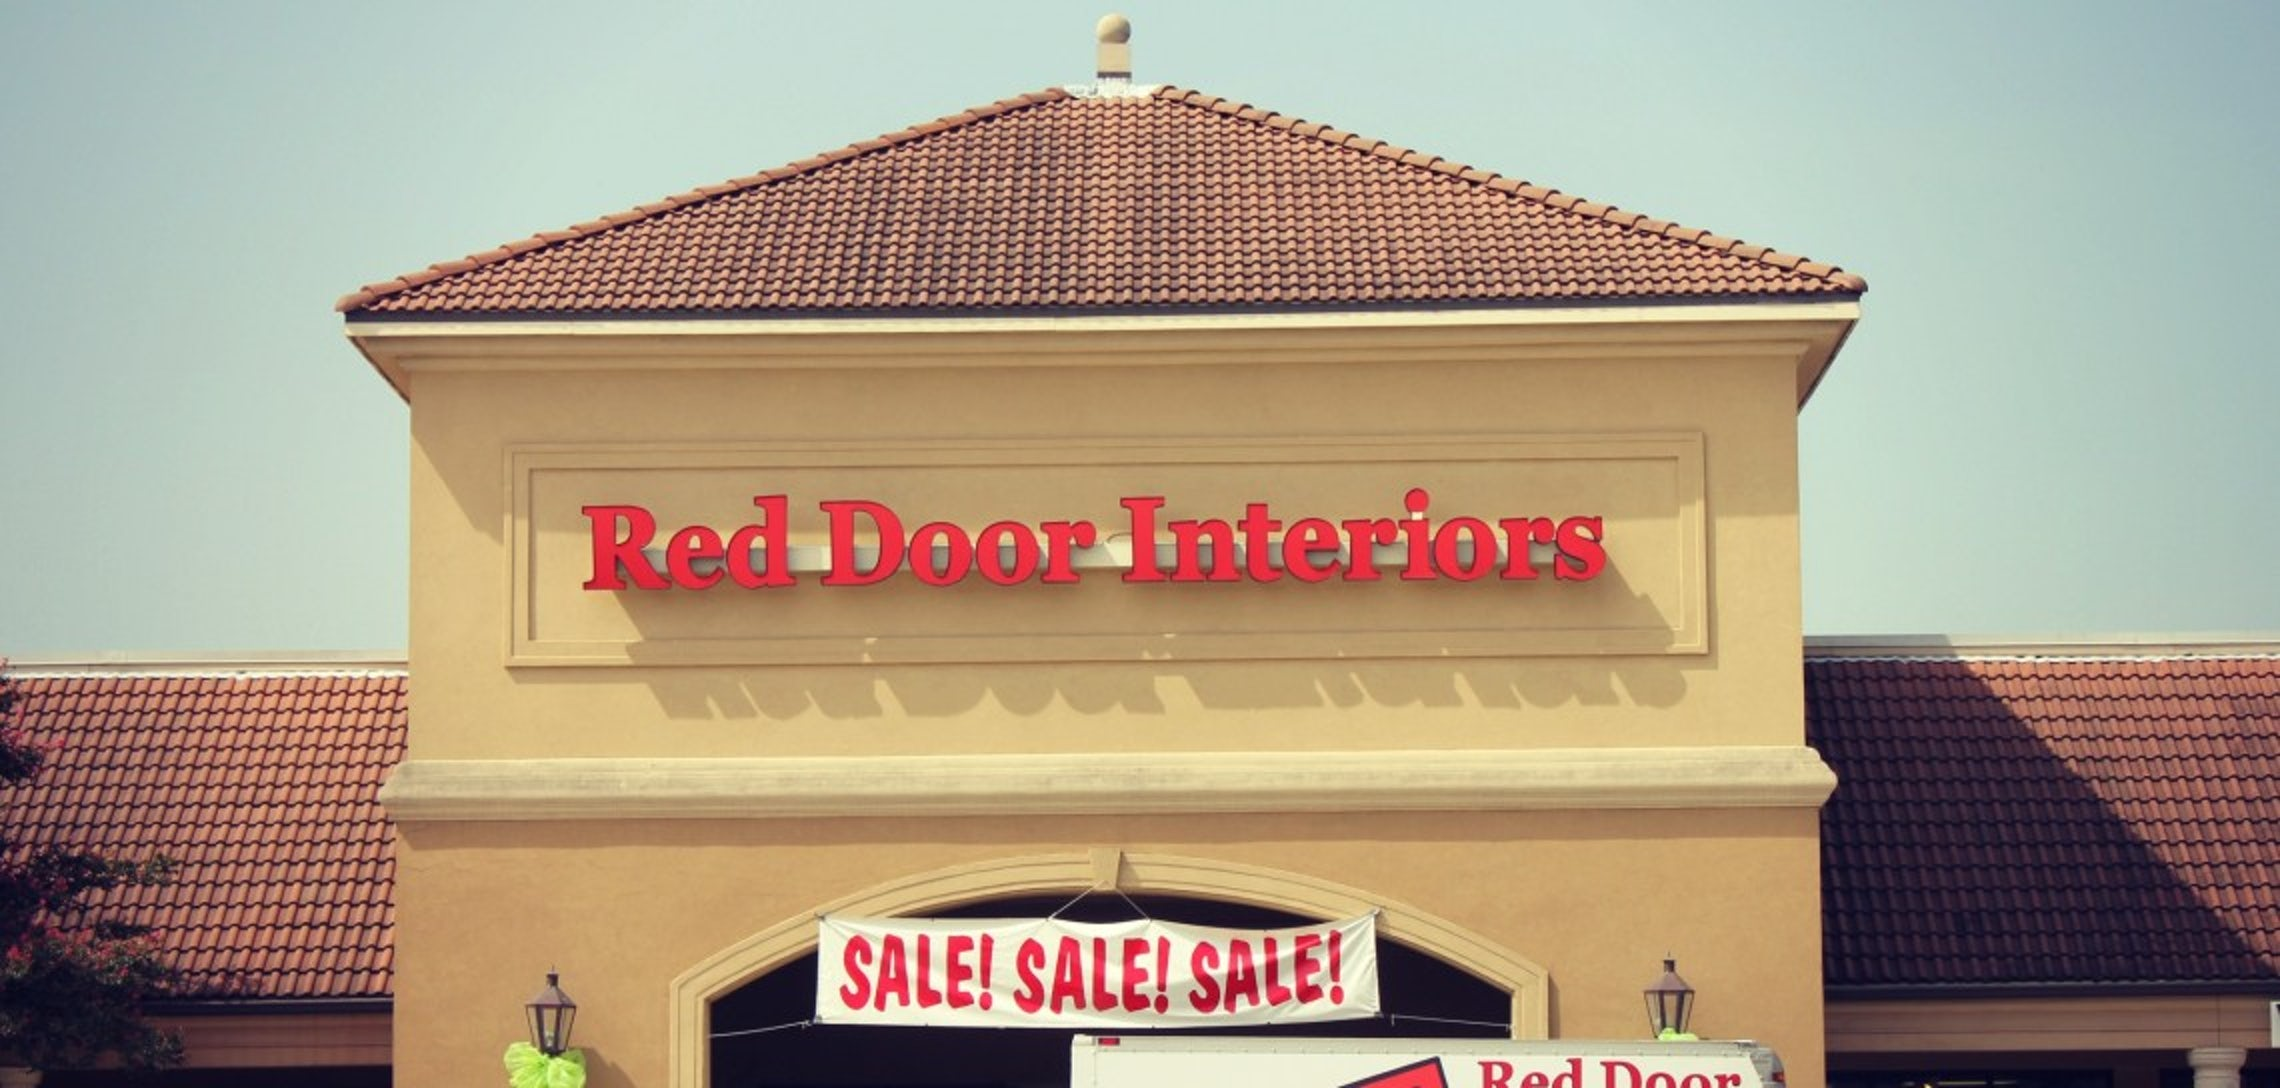 Red Door Interiors Moving